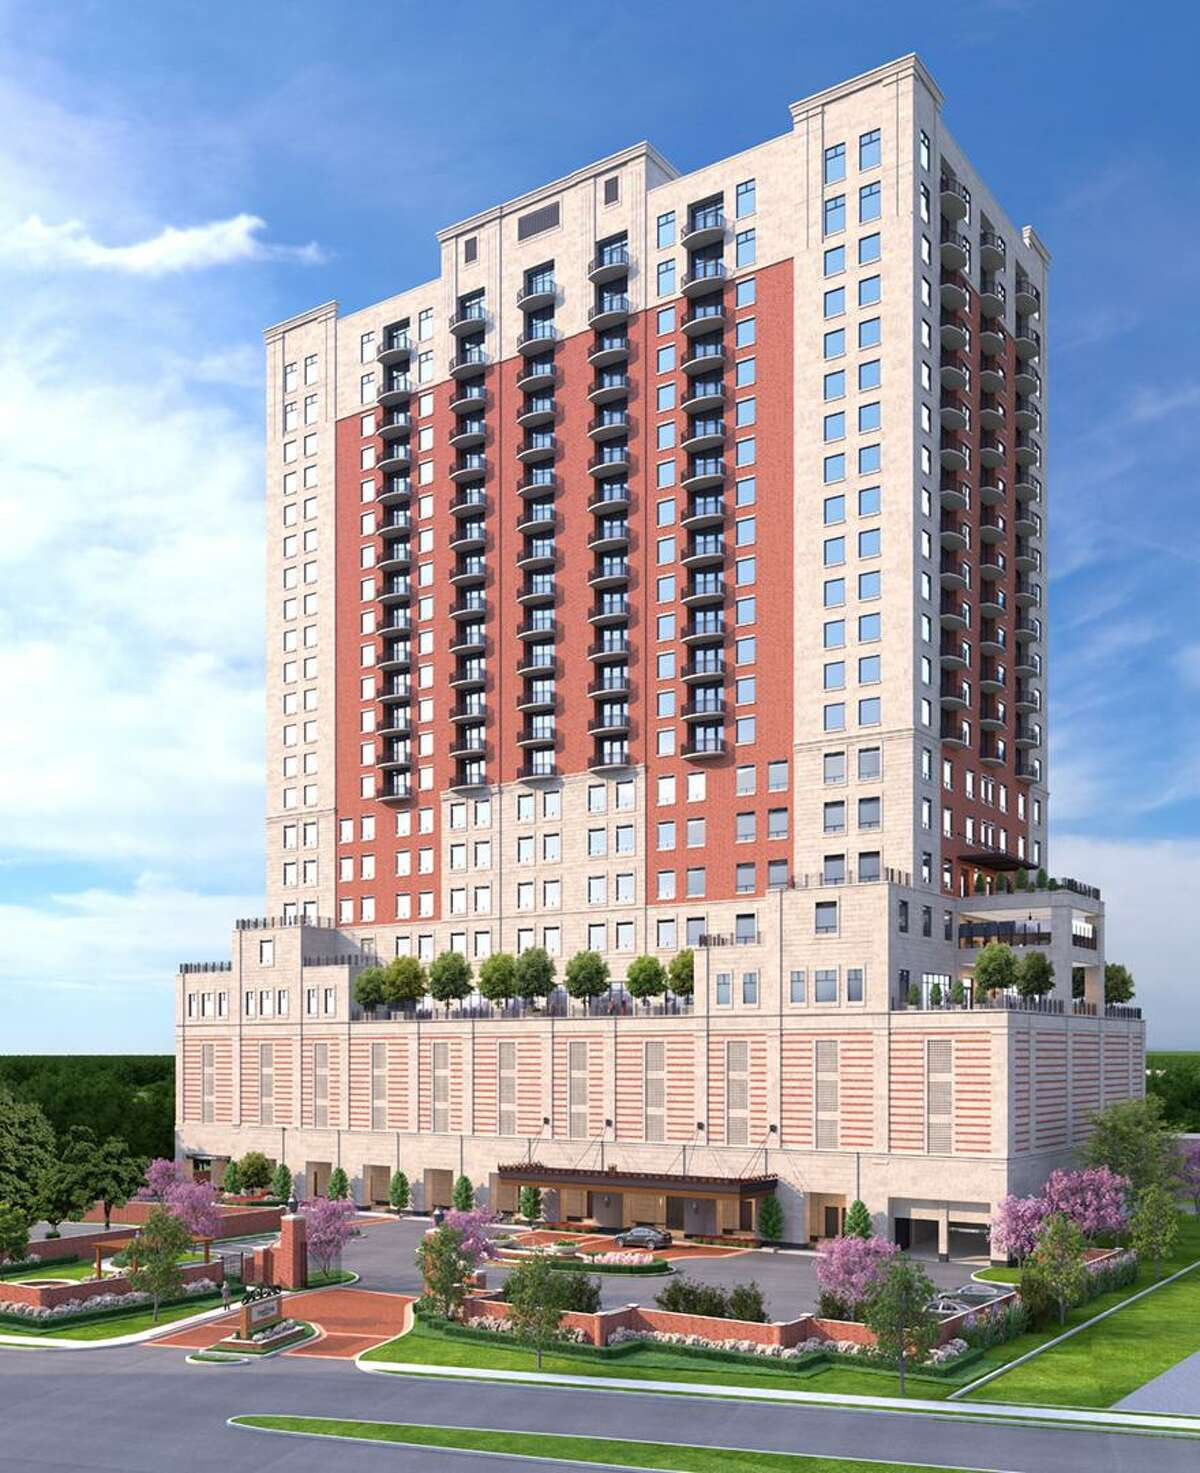 Dallas-based Tradition Senior Living plans to open The Tradition-Woodway, a 23-story rental community with 314 residences at 6336 Woodway Drive, in April of 2020. Jackson & Ryan Architects and D.E. Harvey Builders, both based in Houston, serve as the architect and general contractor.